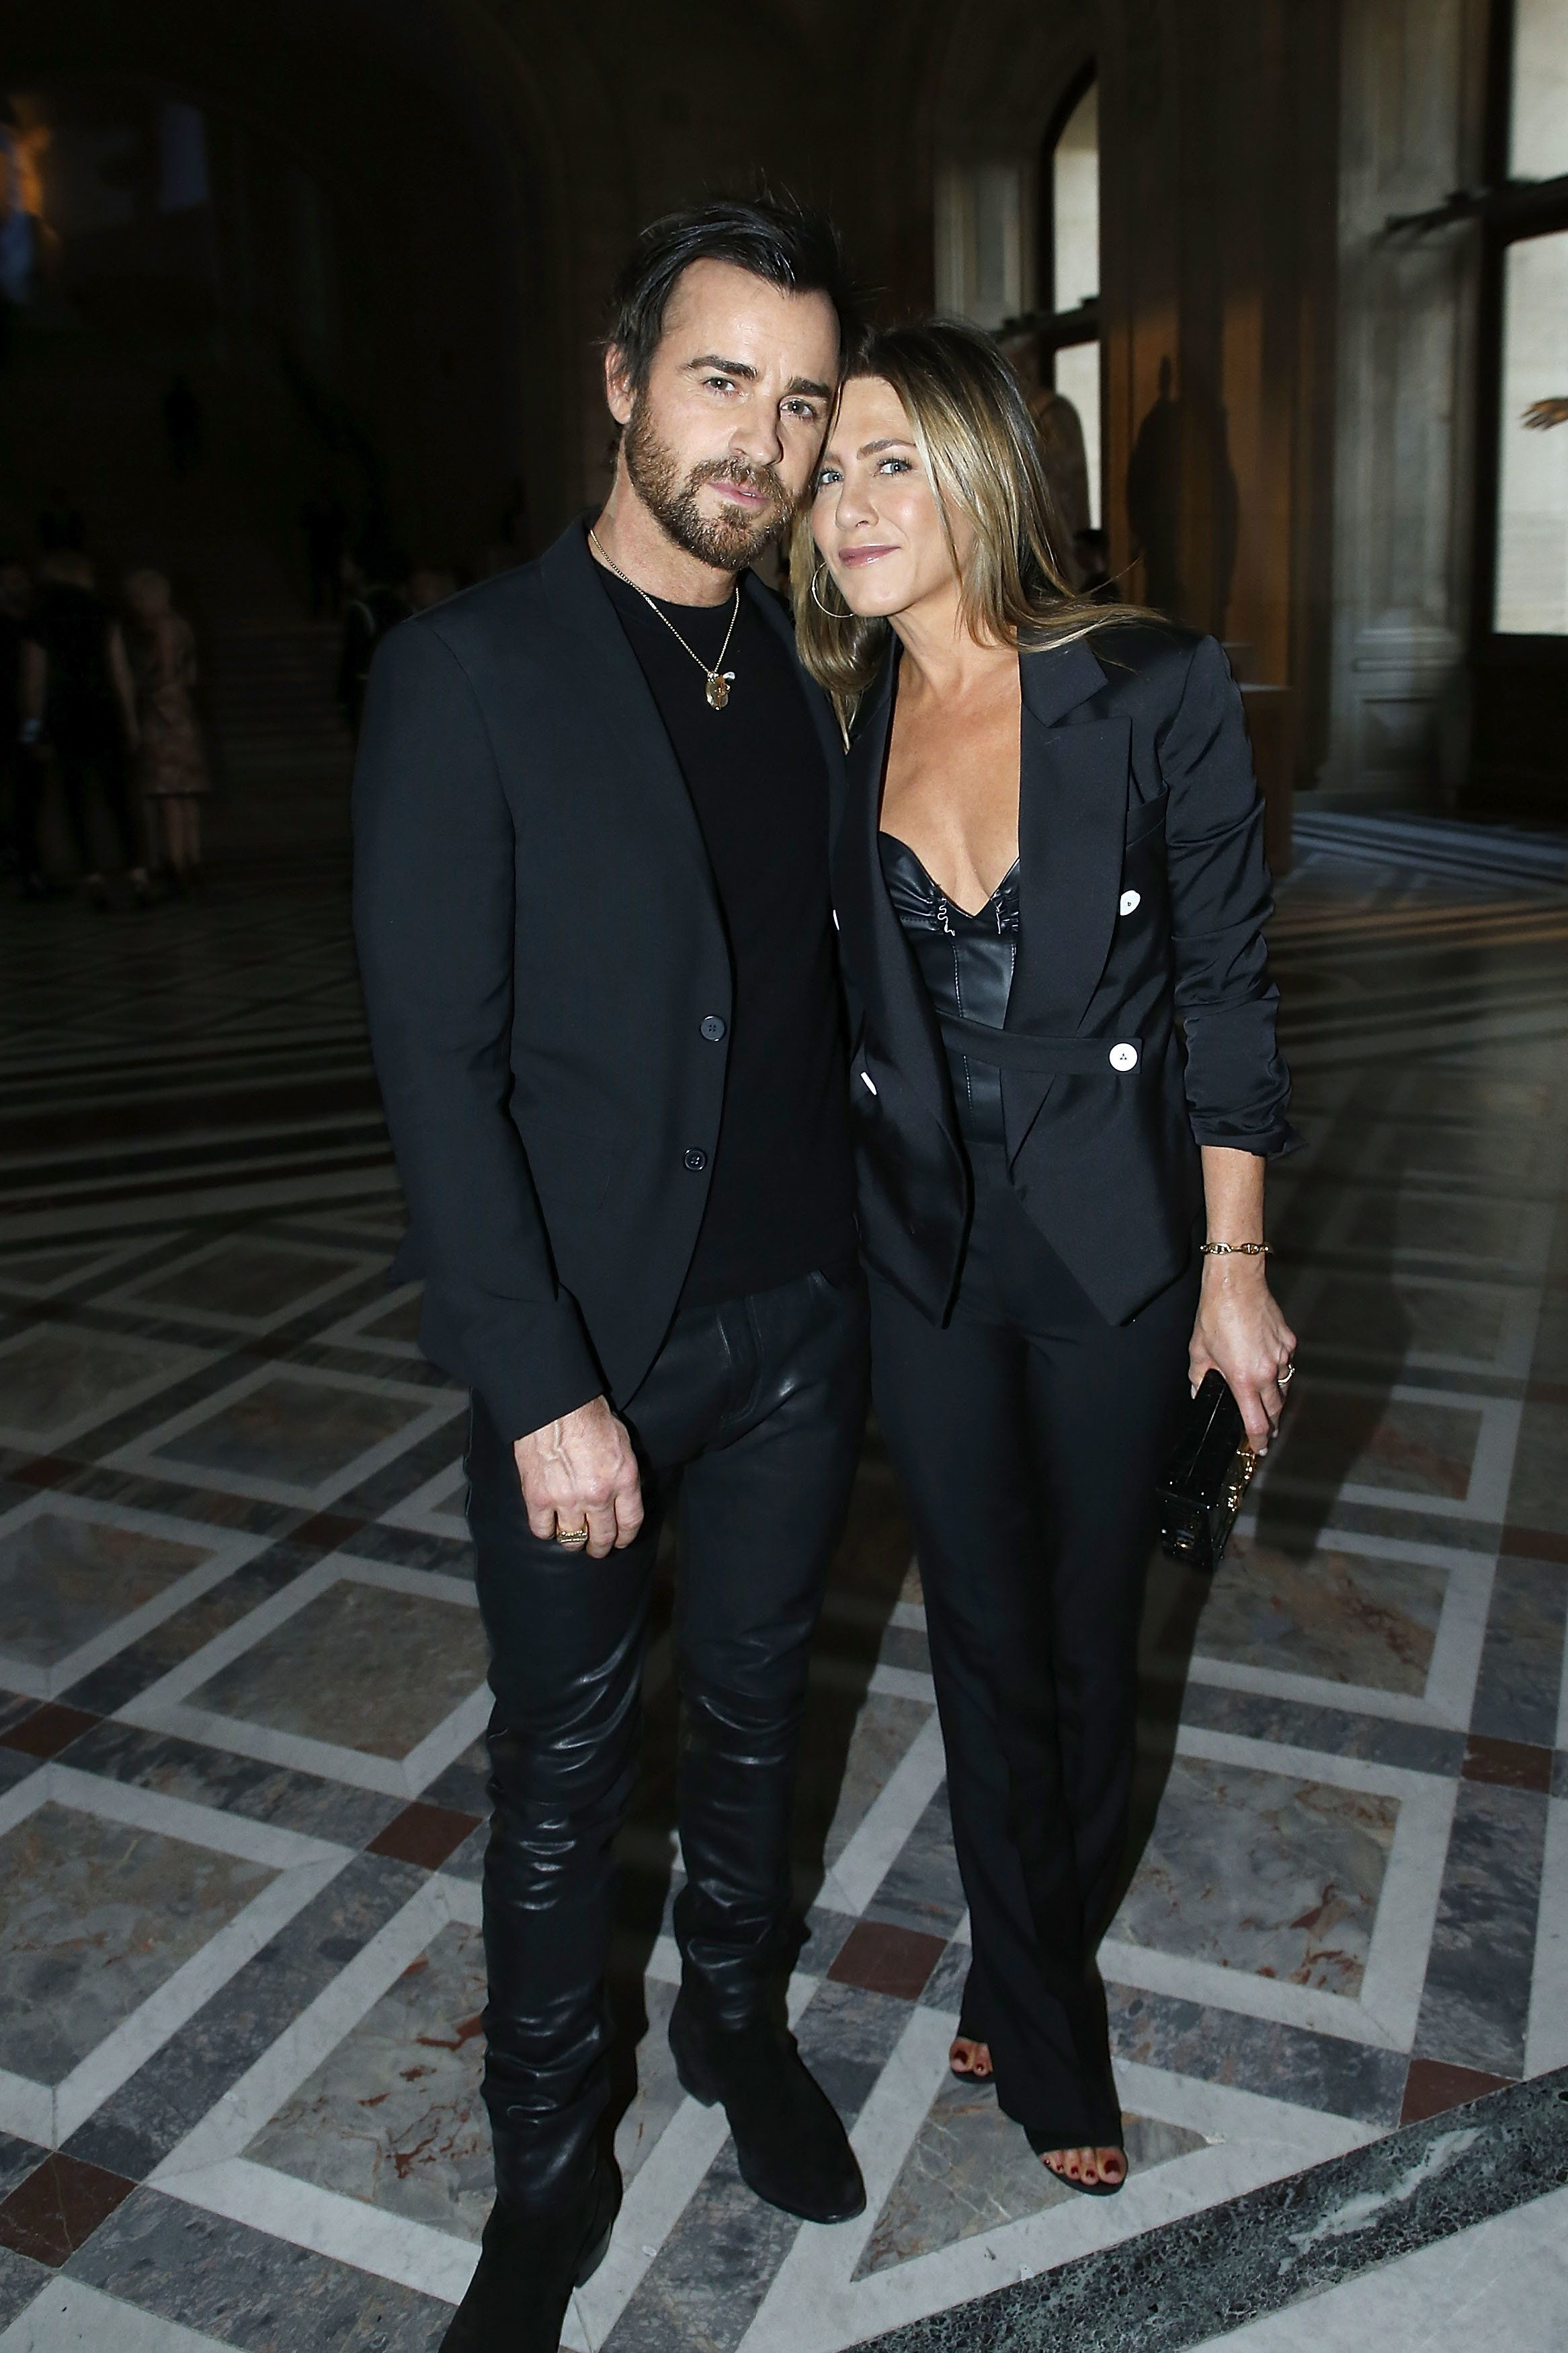 PARIS, FRANCE - APRIL 11:  Actor Justin Theroux and Actress Jennifer Aniston attend the 'LVxKOONS' exhibition (Louis Vuitton and Jeff Koons Collaboration) at Musee du Louvre on April 11, 2017 in Paris, France.  (Photo by Bertrand Rindoff Petroff/Getty Images)